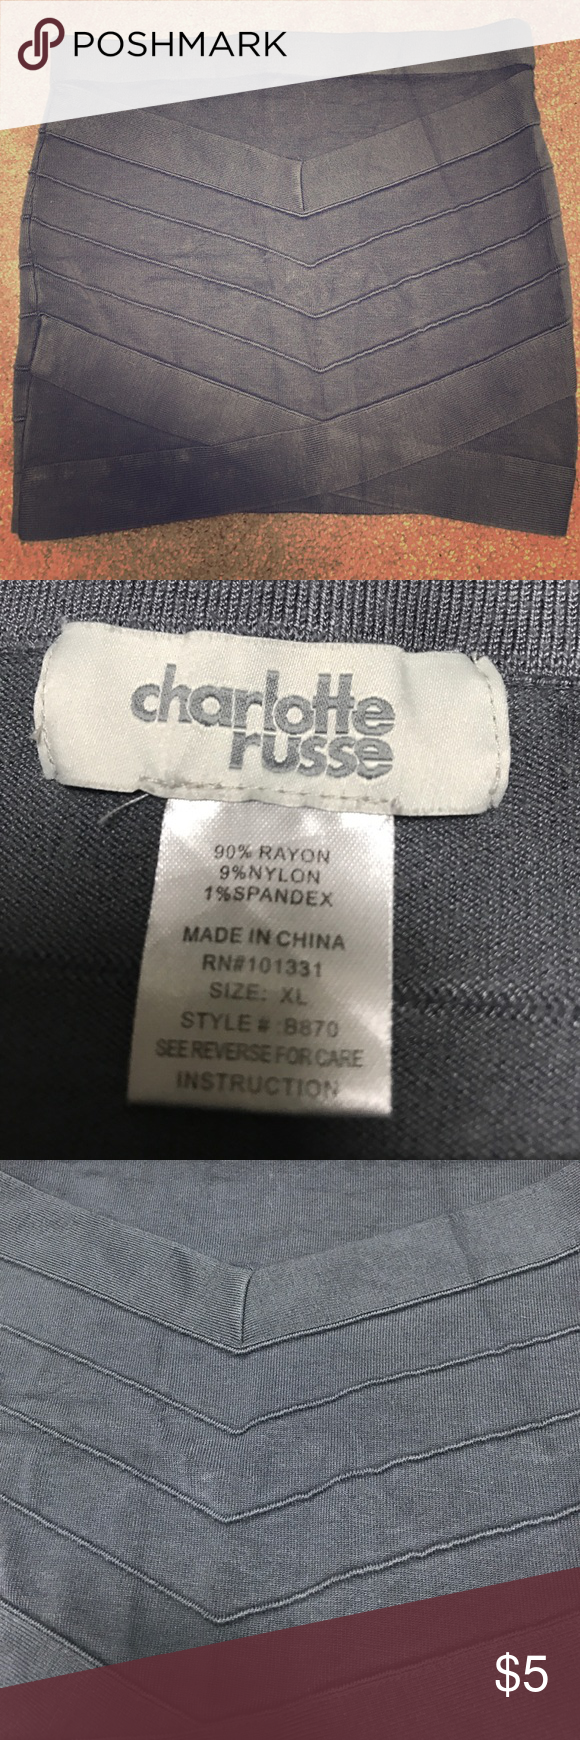 Banded skirt Charlotte Russe size XL fits like a m Banded skirt Charlotte Russe size XL fits like a med. good condition , loved for sure super comfy Charlotte Russe Skirts Mini